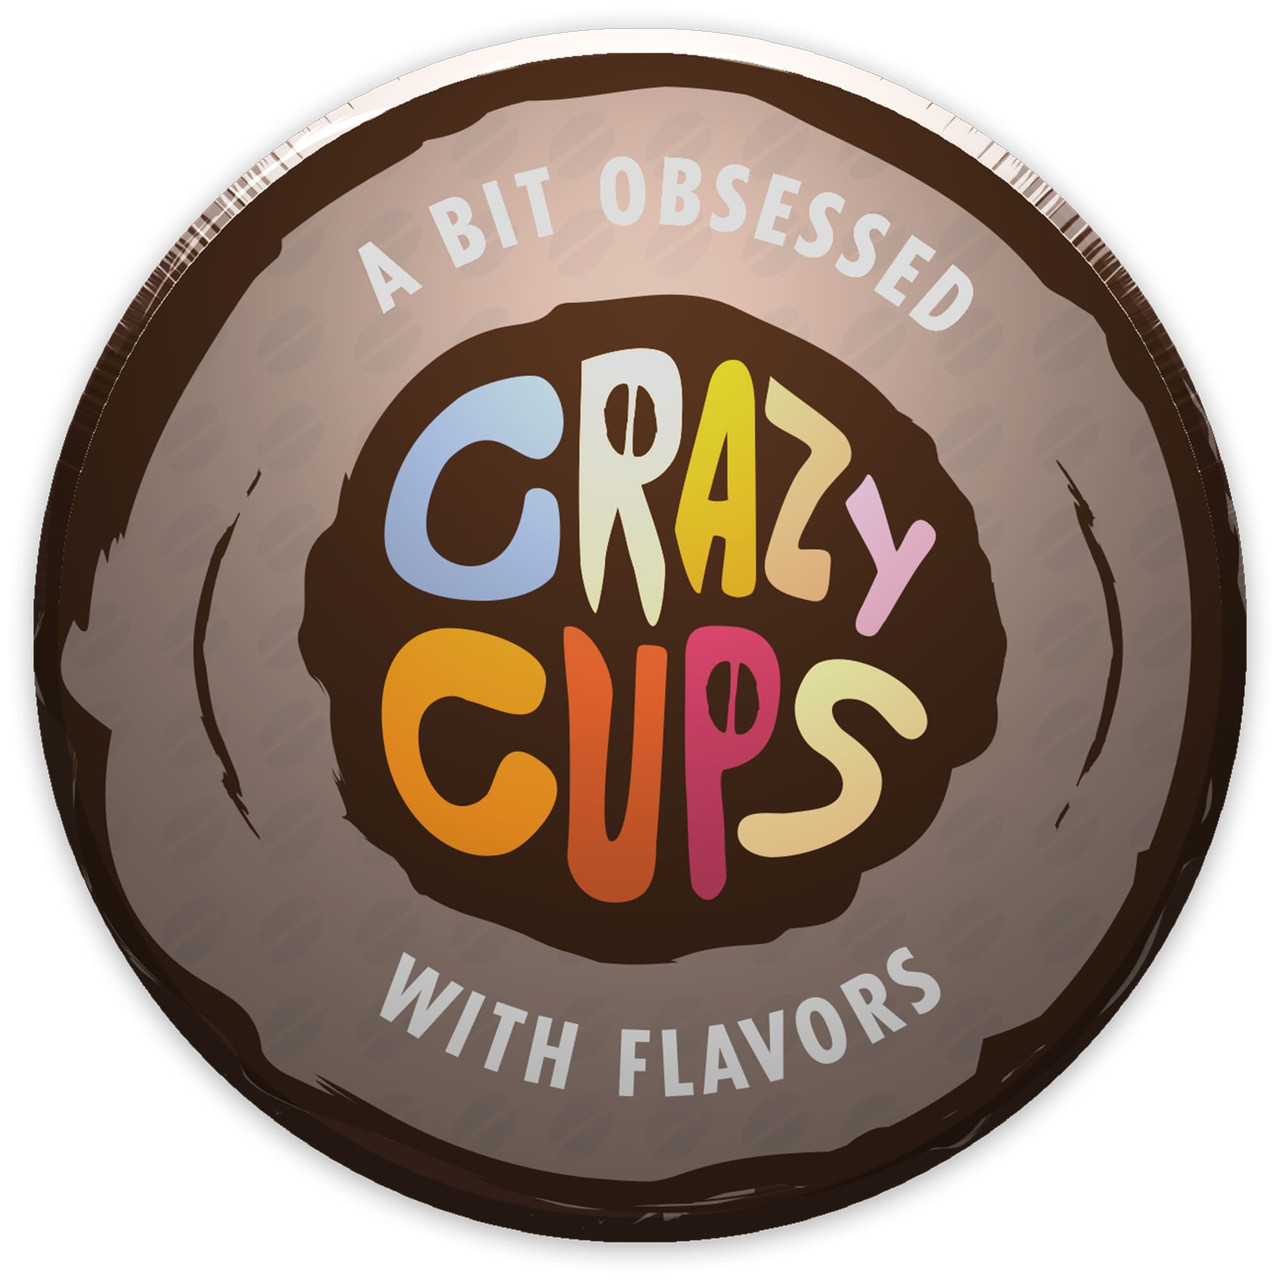 Cinnamon Toast Ground Coffee By Crazy Cups